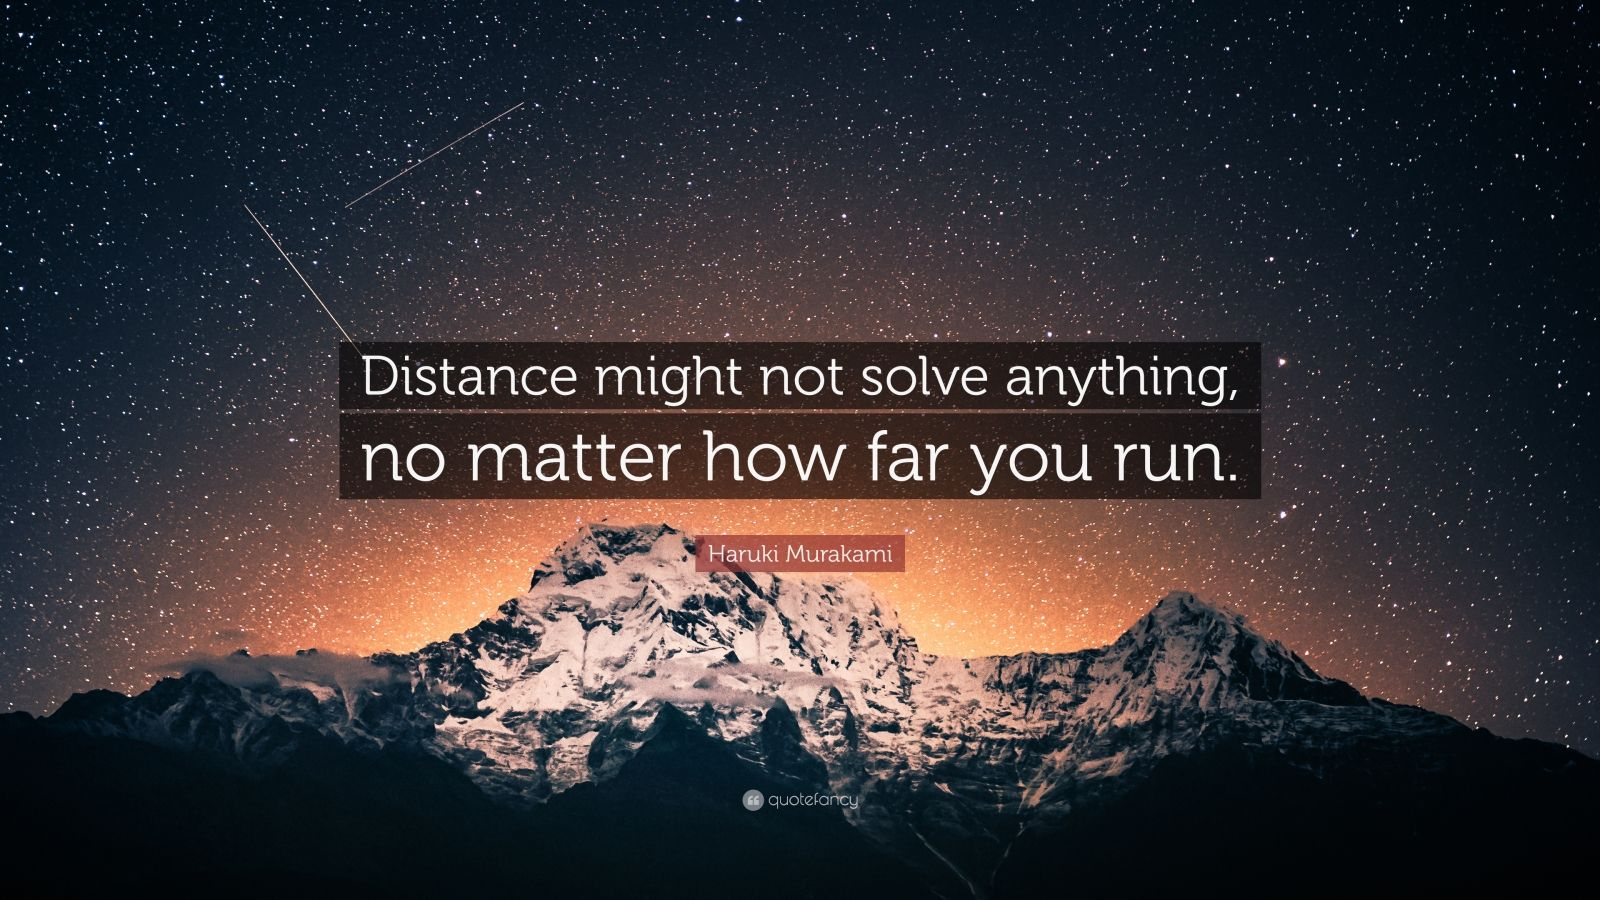 """Haruki Murakami Quote: """"Distance might not solve anything, no matter how far you run."""""""